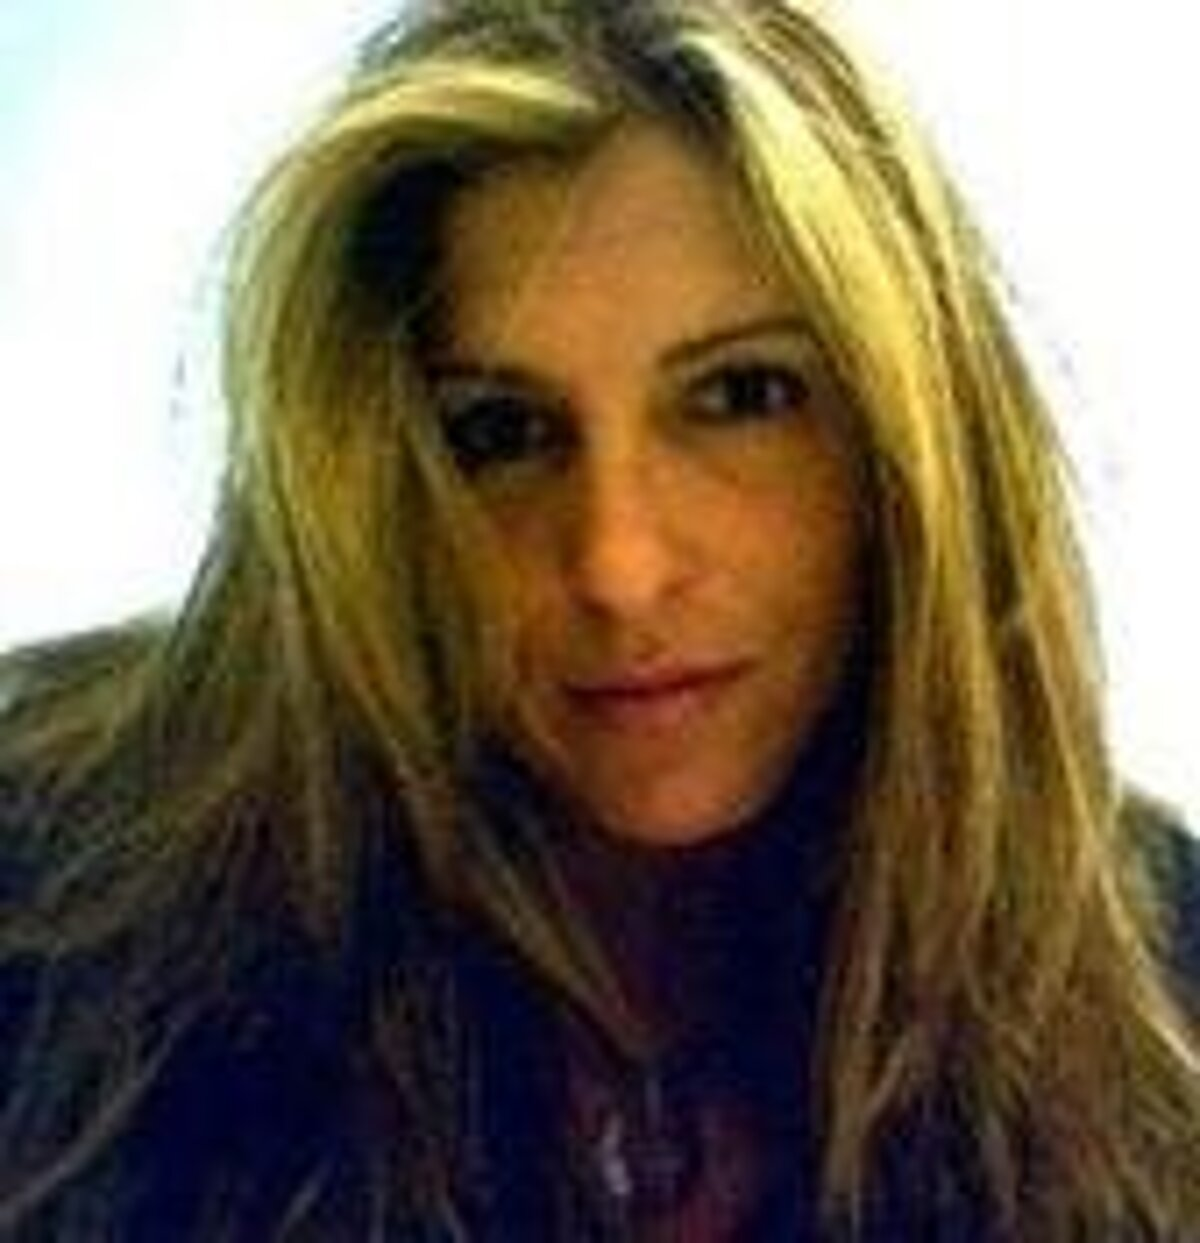 Complaint-review: Sonia belesis - Fraudsters con artist. Photo #1